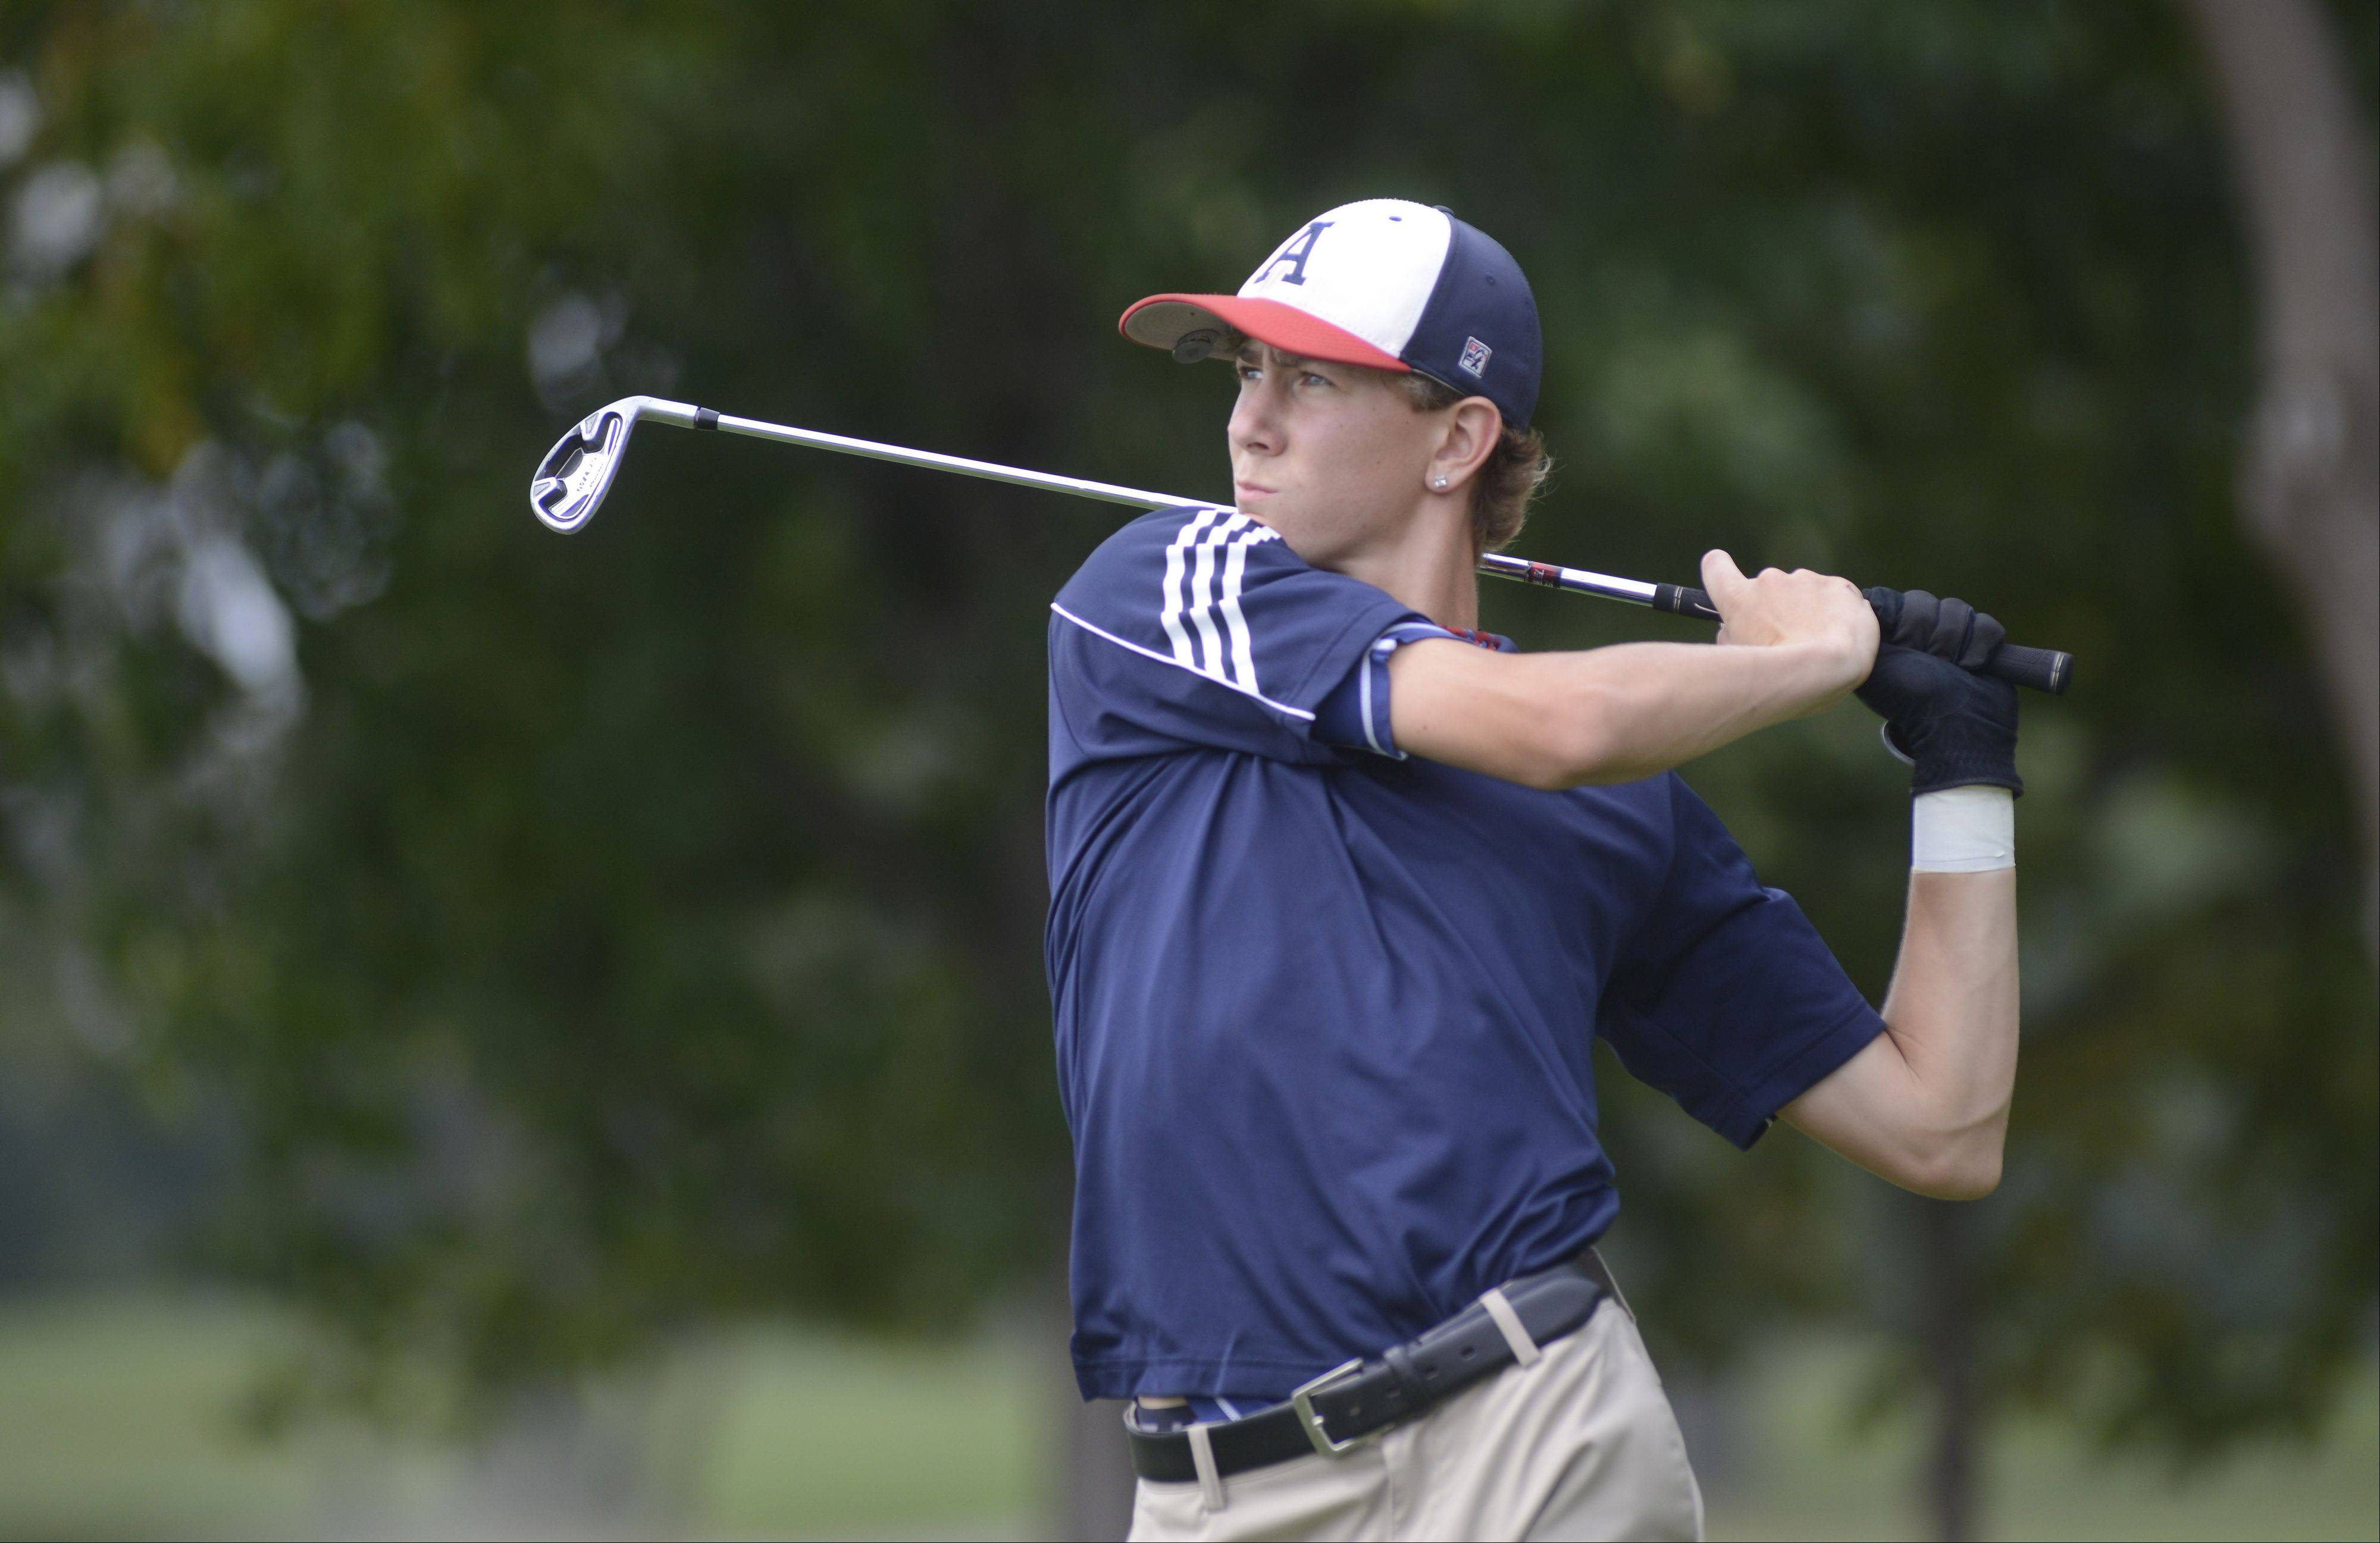 West Aurora's Mike Golich tees off at the second hole at Phillips Park Golf Course in Aurora on Wednesday, September 18.